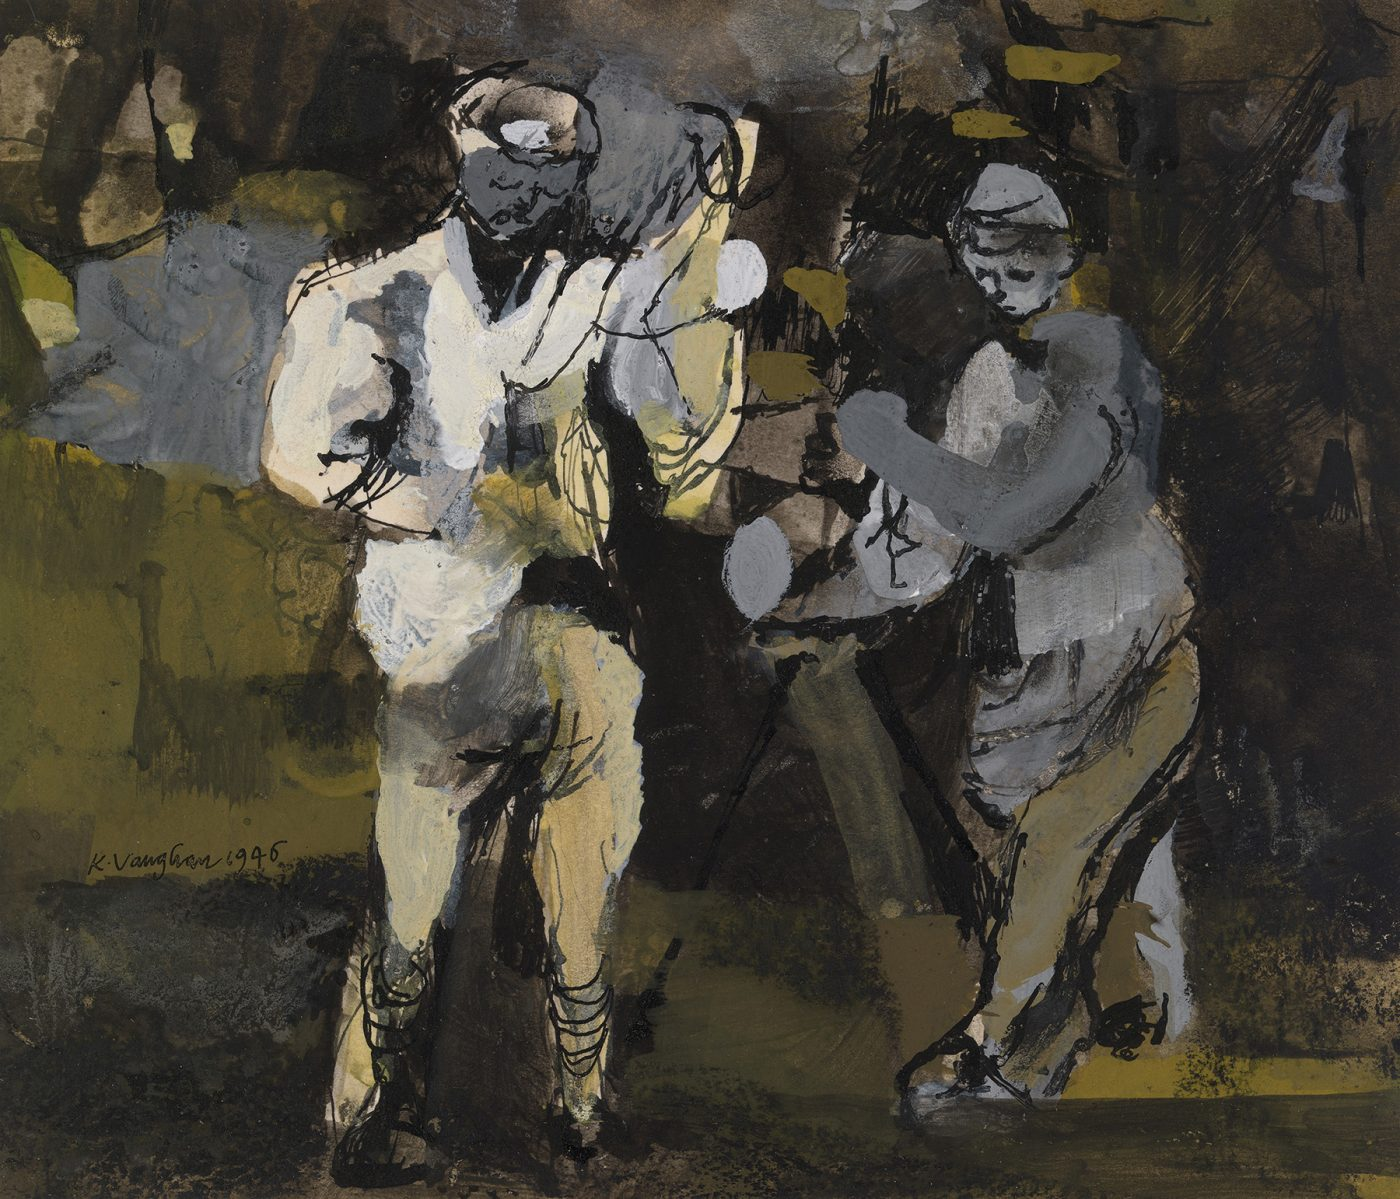 Keith Vaughan (1912-1977), Yorkshire Farm Labourers